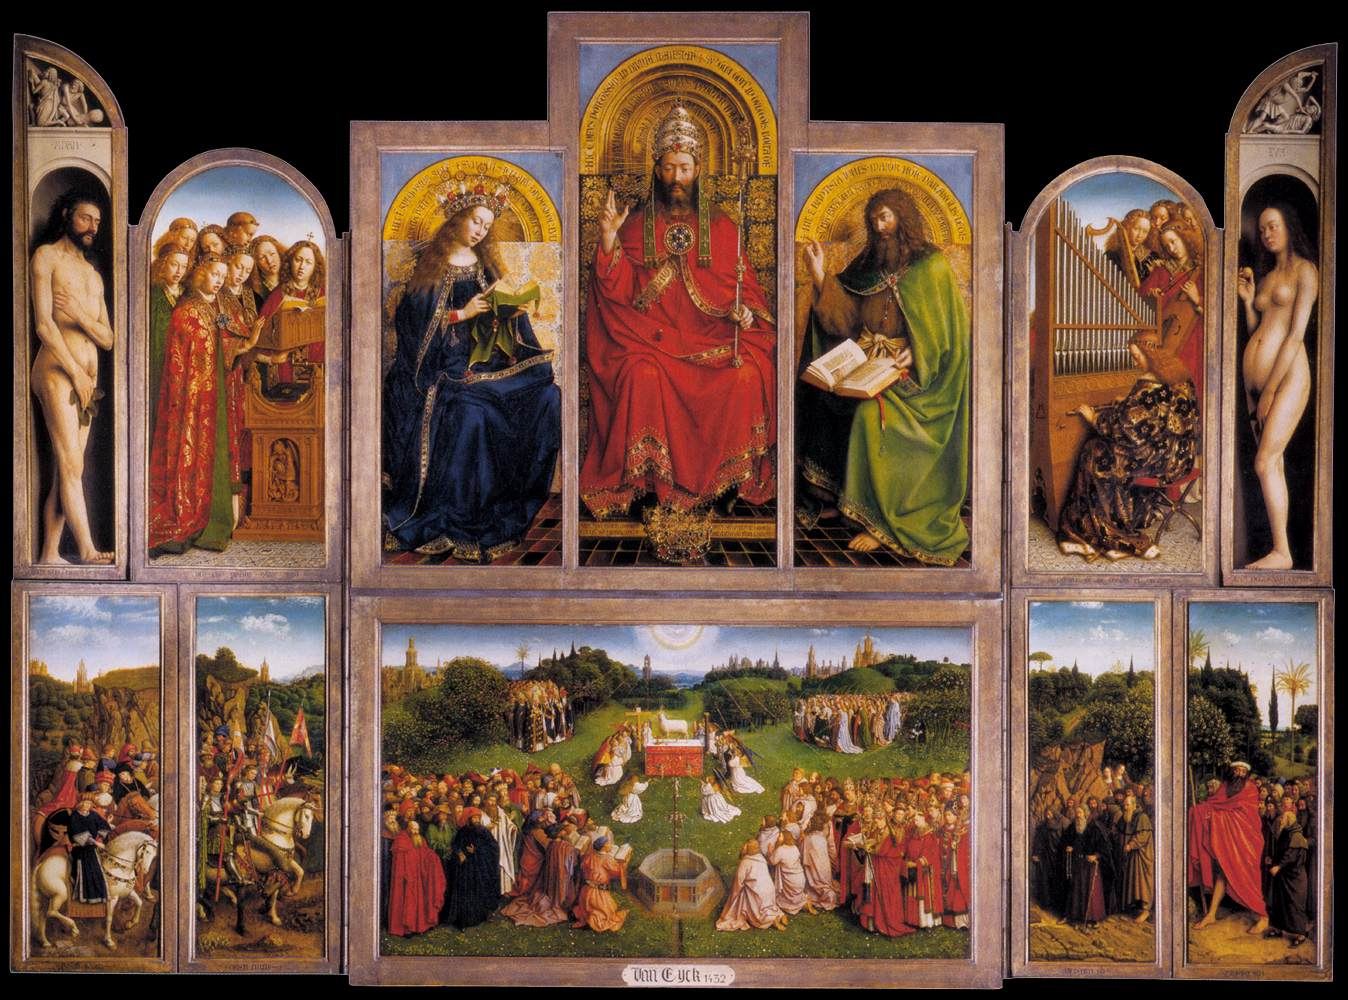 http://uploads8.wikipaintings.org/images/jan-van-eyck/the-ghent-altarpiece-1432.jpg